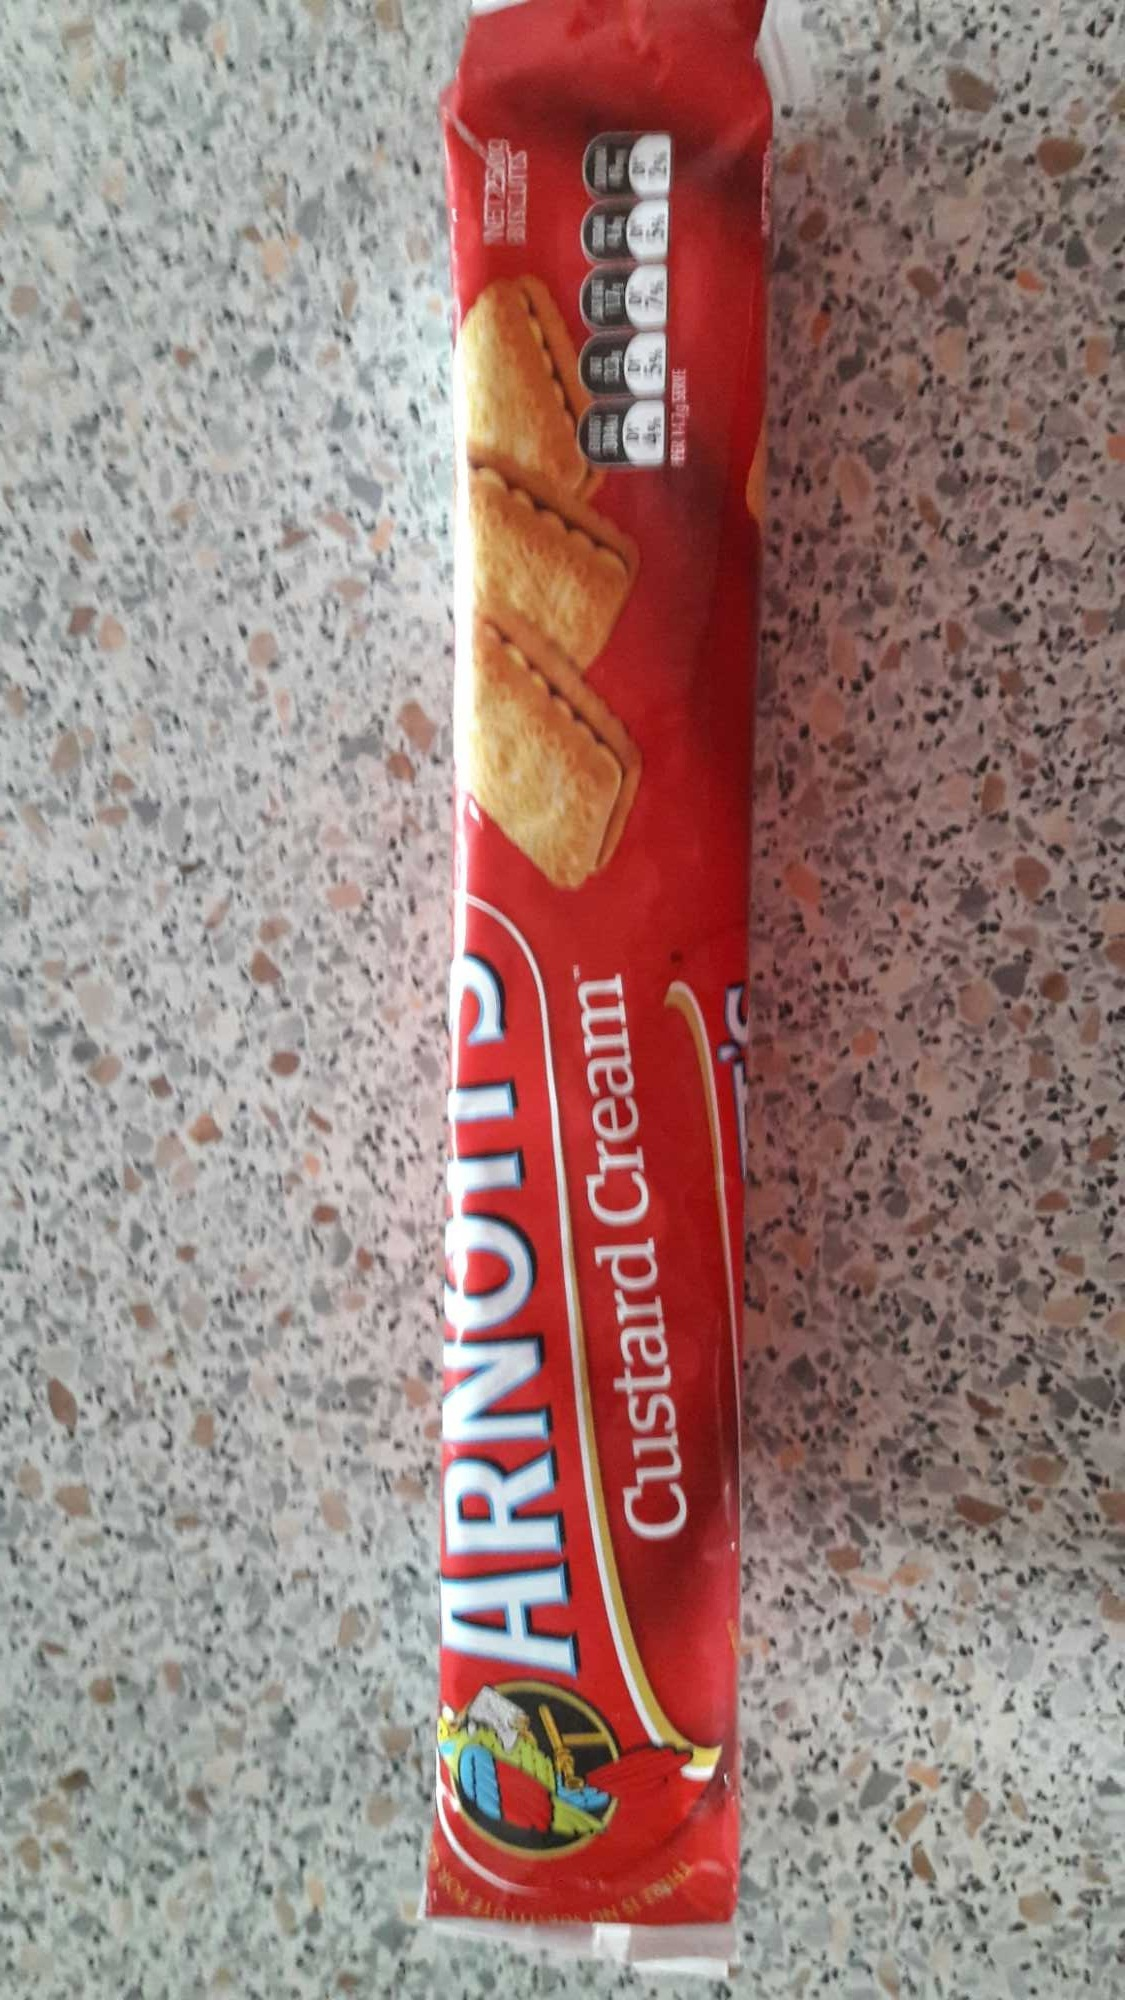 Custard cream - Product